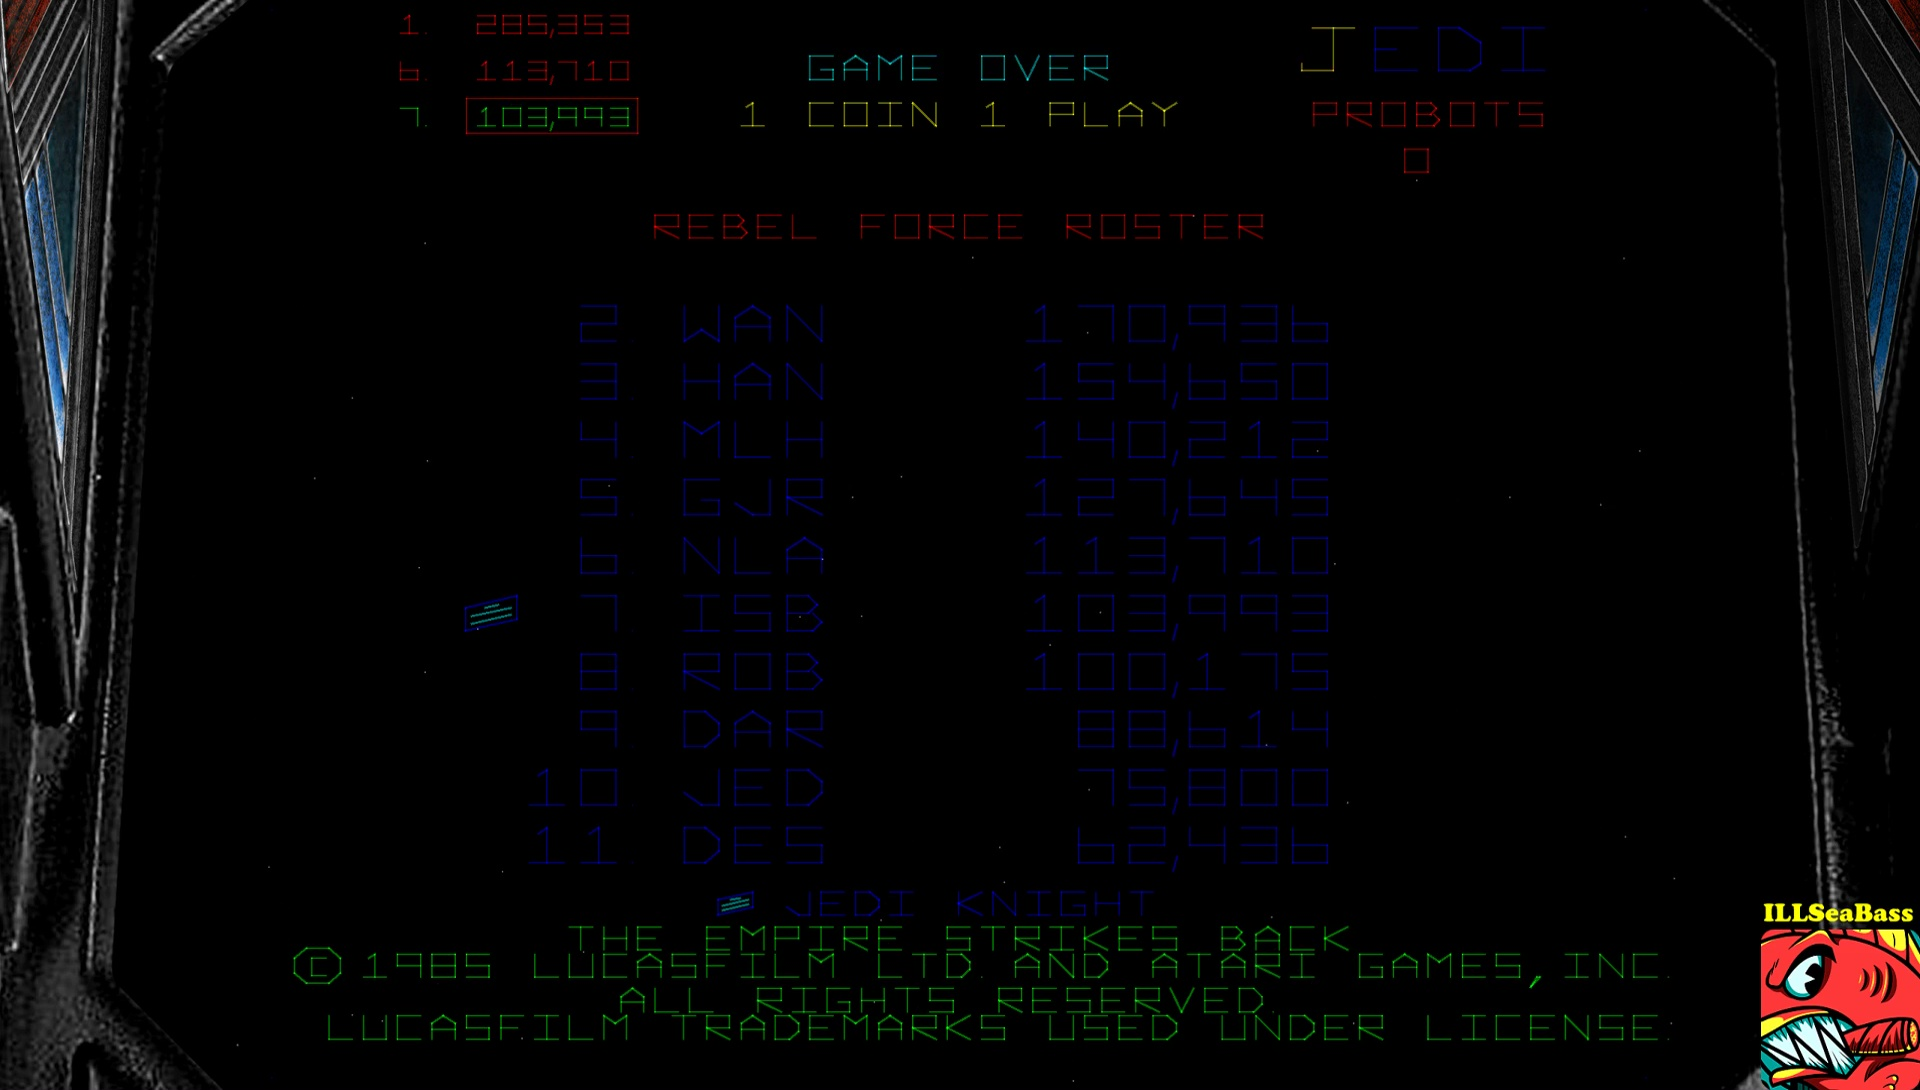 ILLSeaBass: Star Wars: The Empire Strikes Back (Arcade Emulated / M.A.M.E.) 103,933 points on 2017-03-12 21:50:11